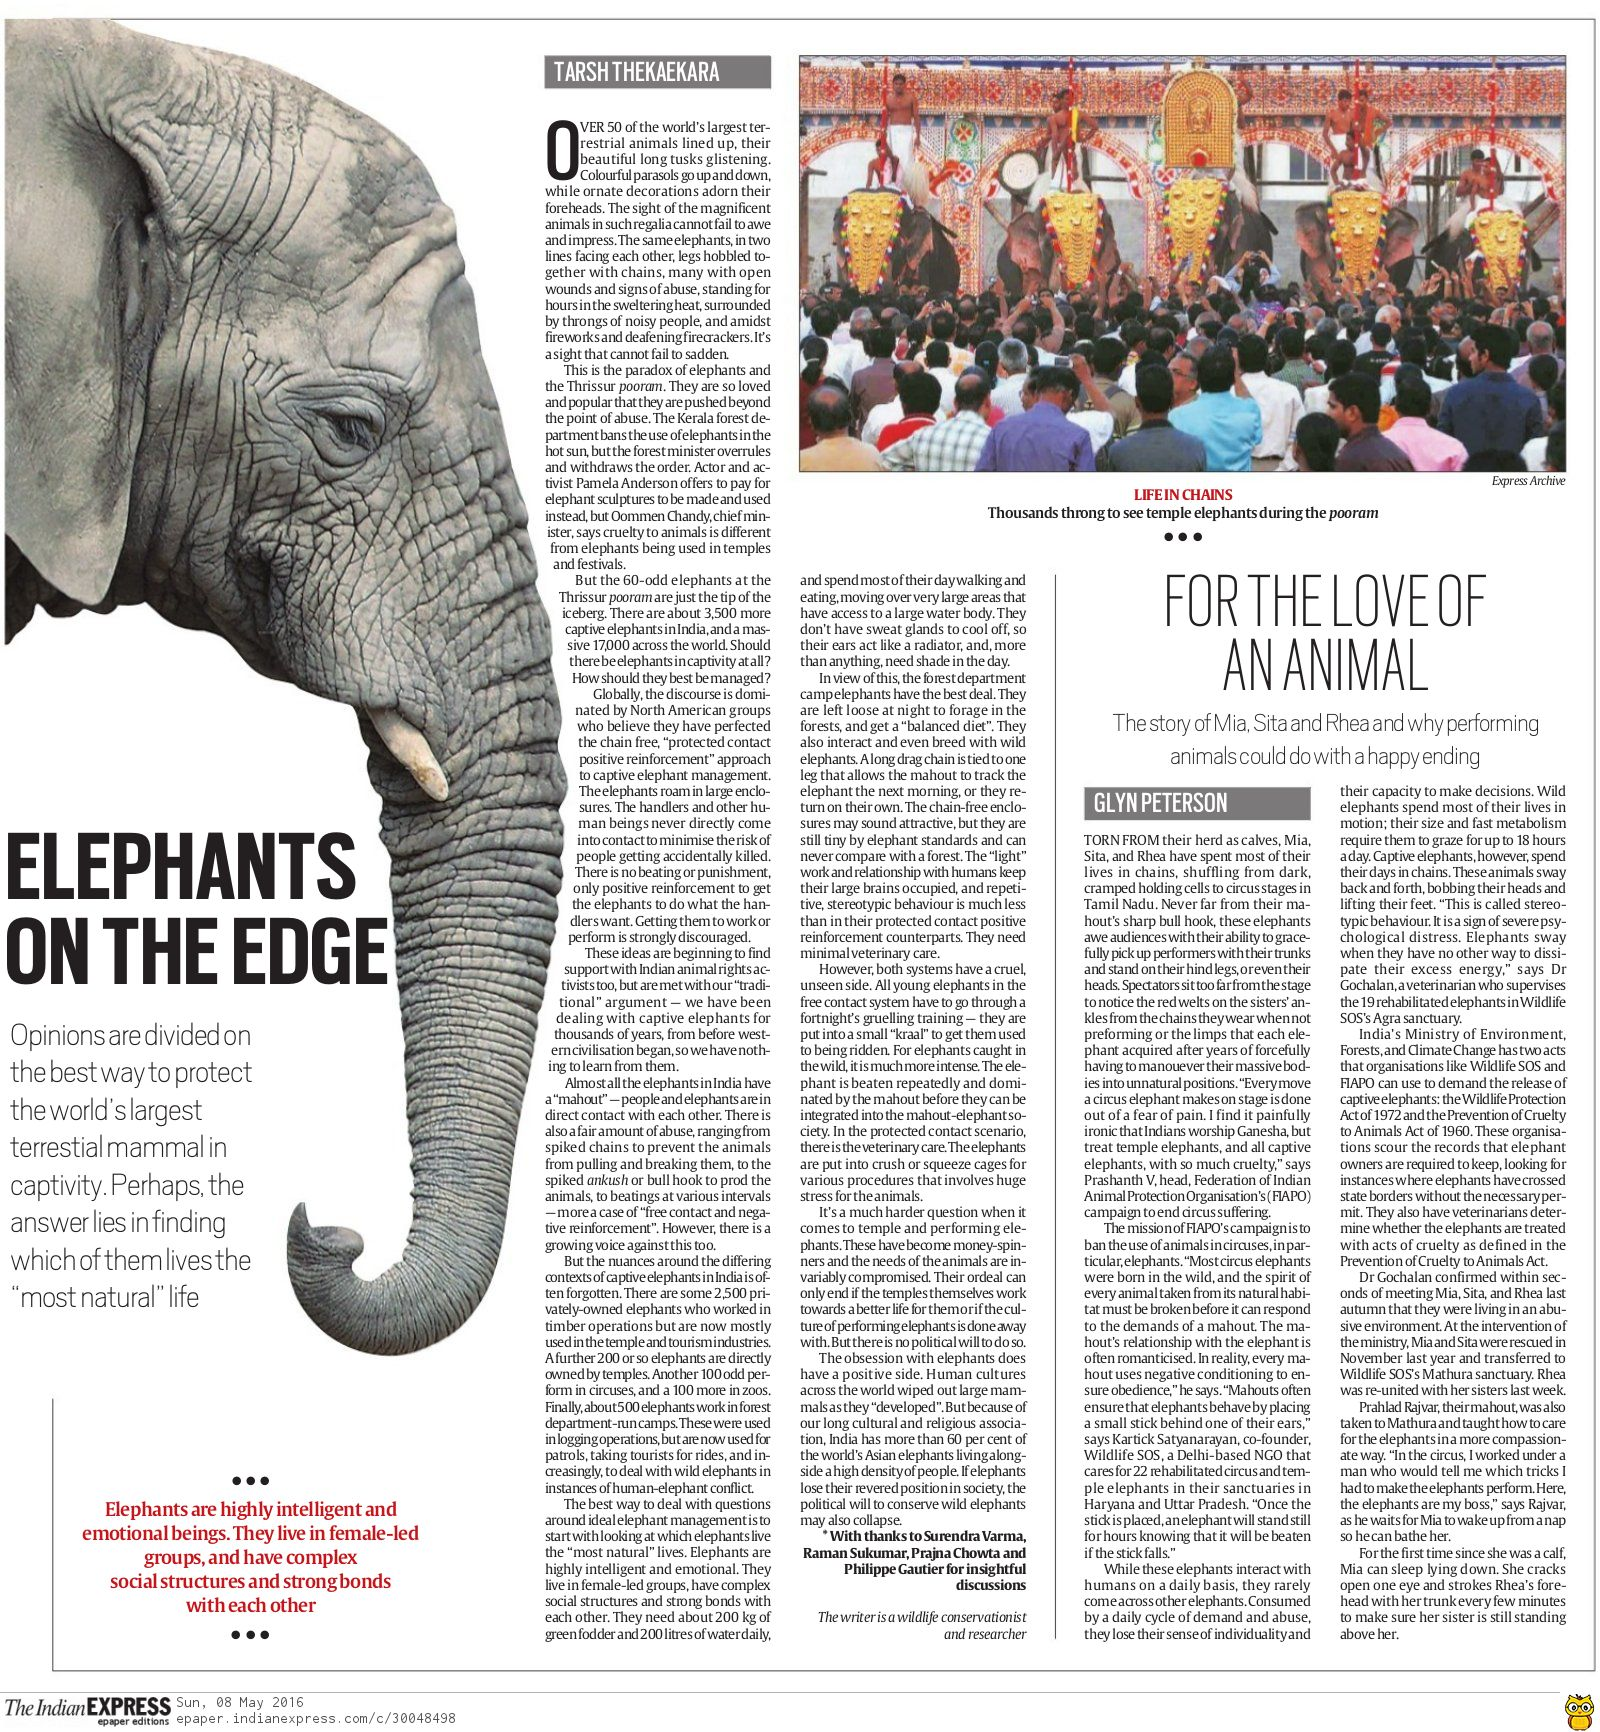 The Indian Express — Glyn Peterson